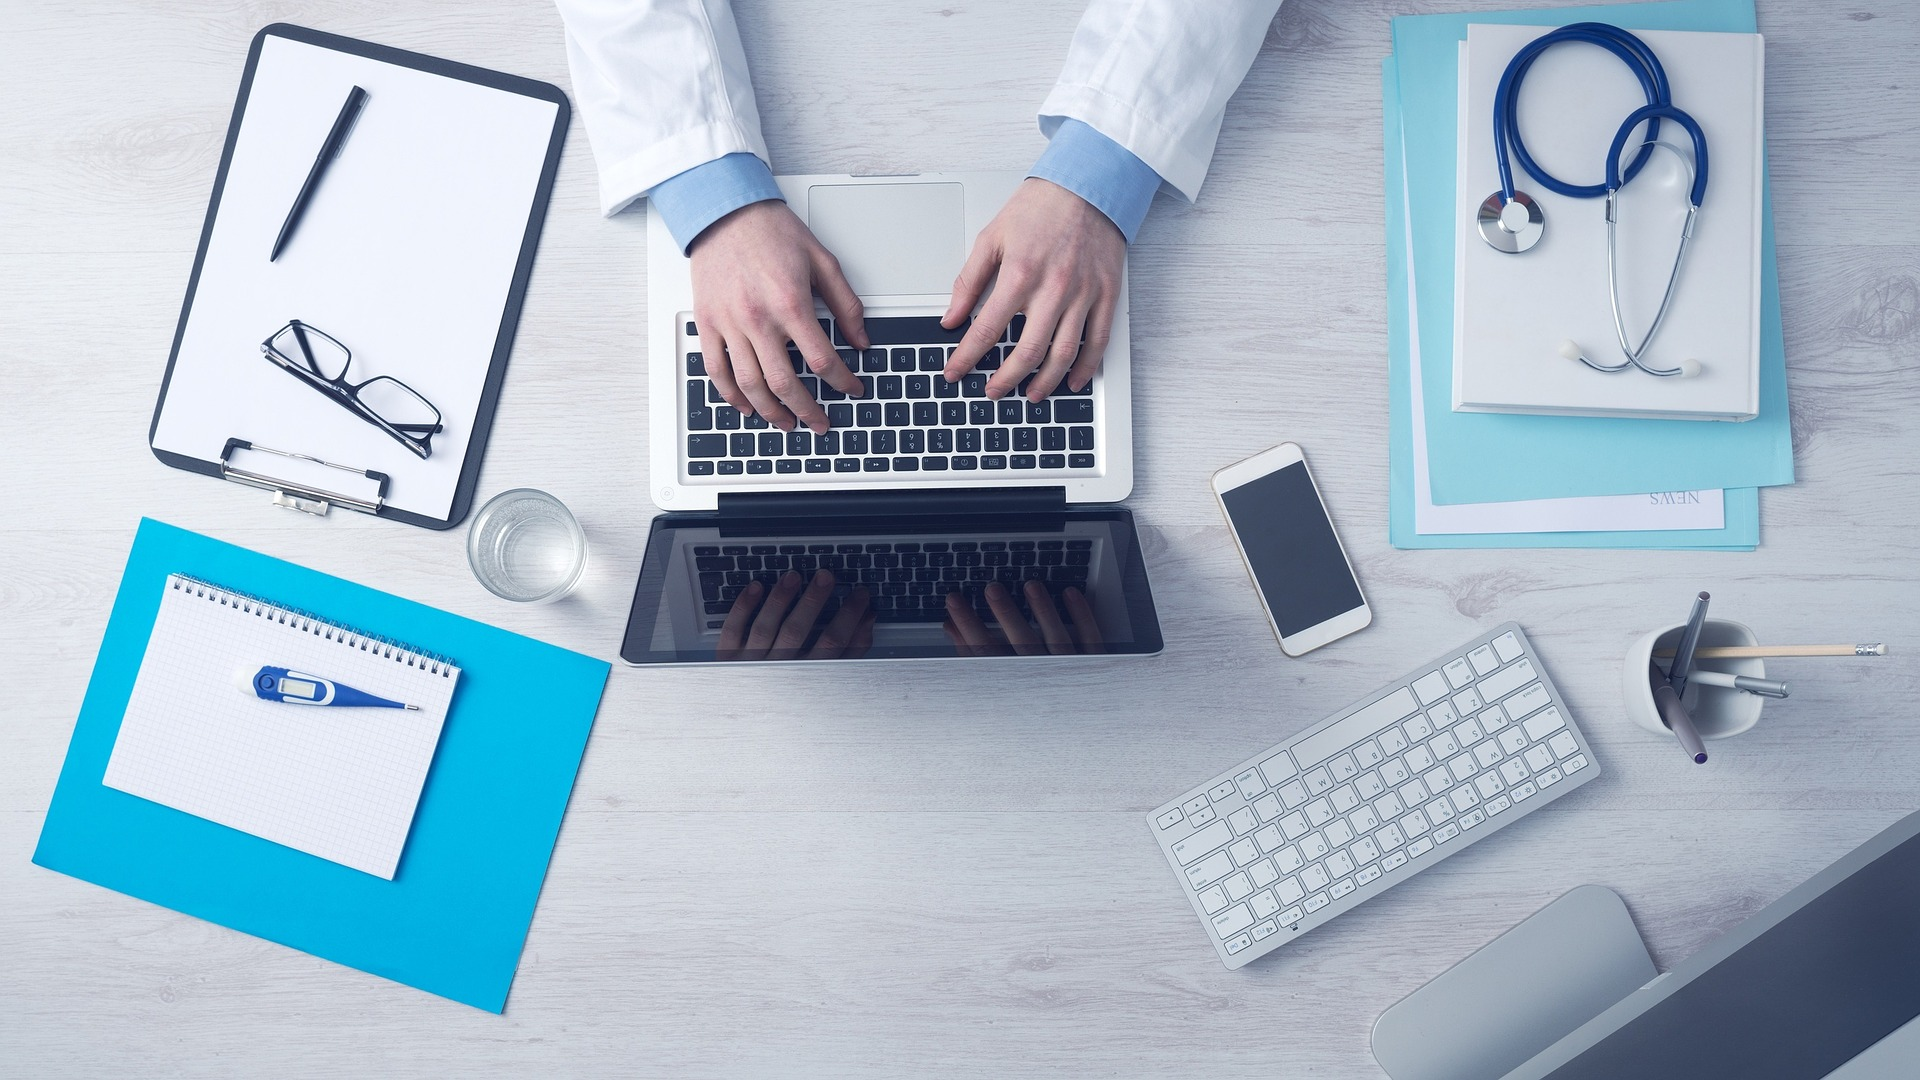 doctors hands at a desk with laptop and note books